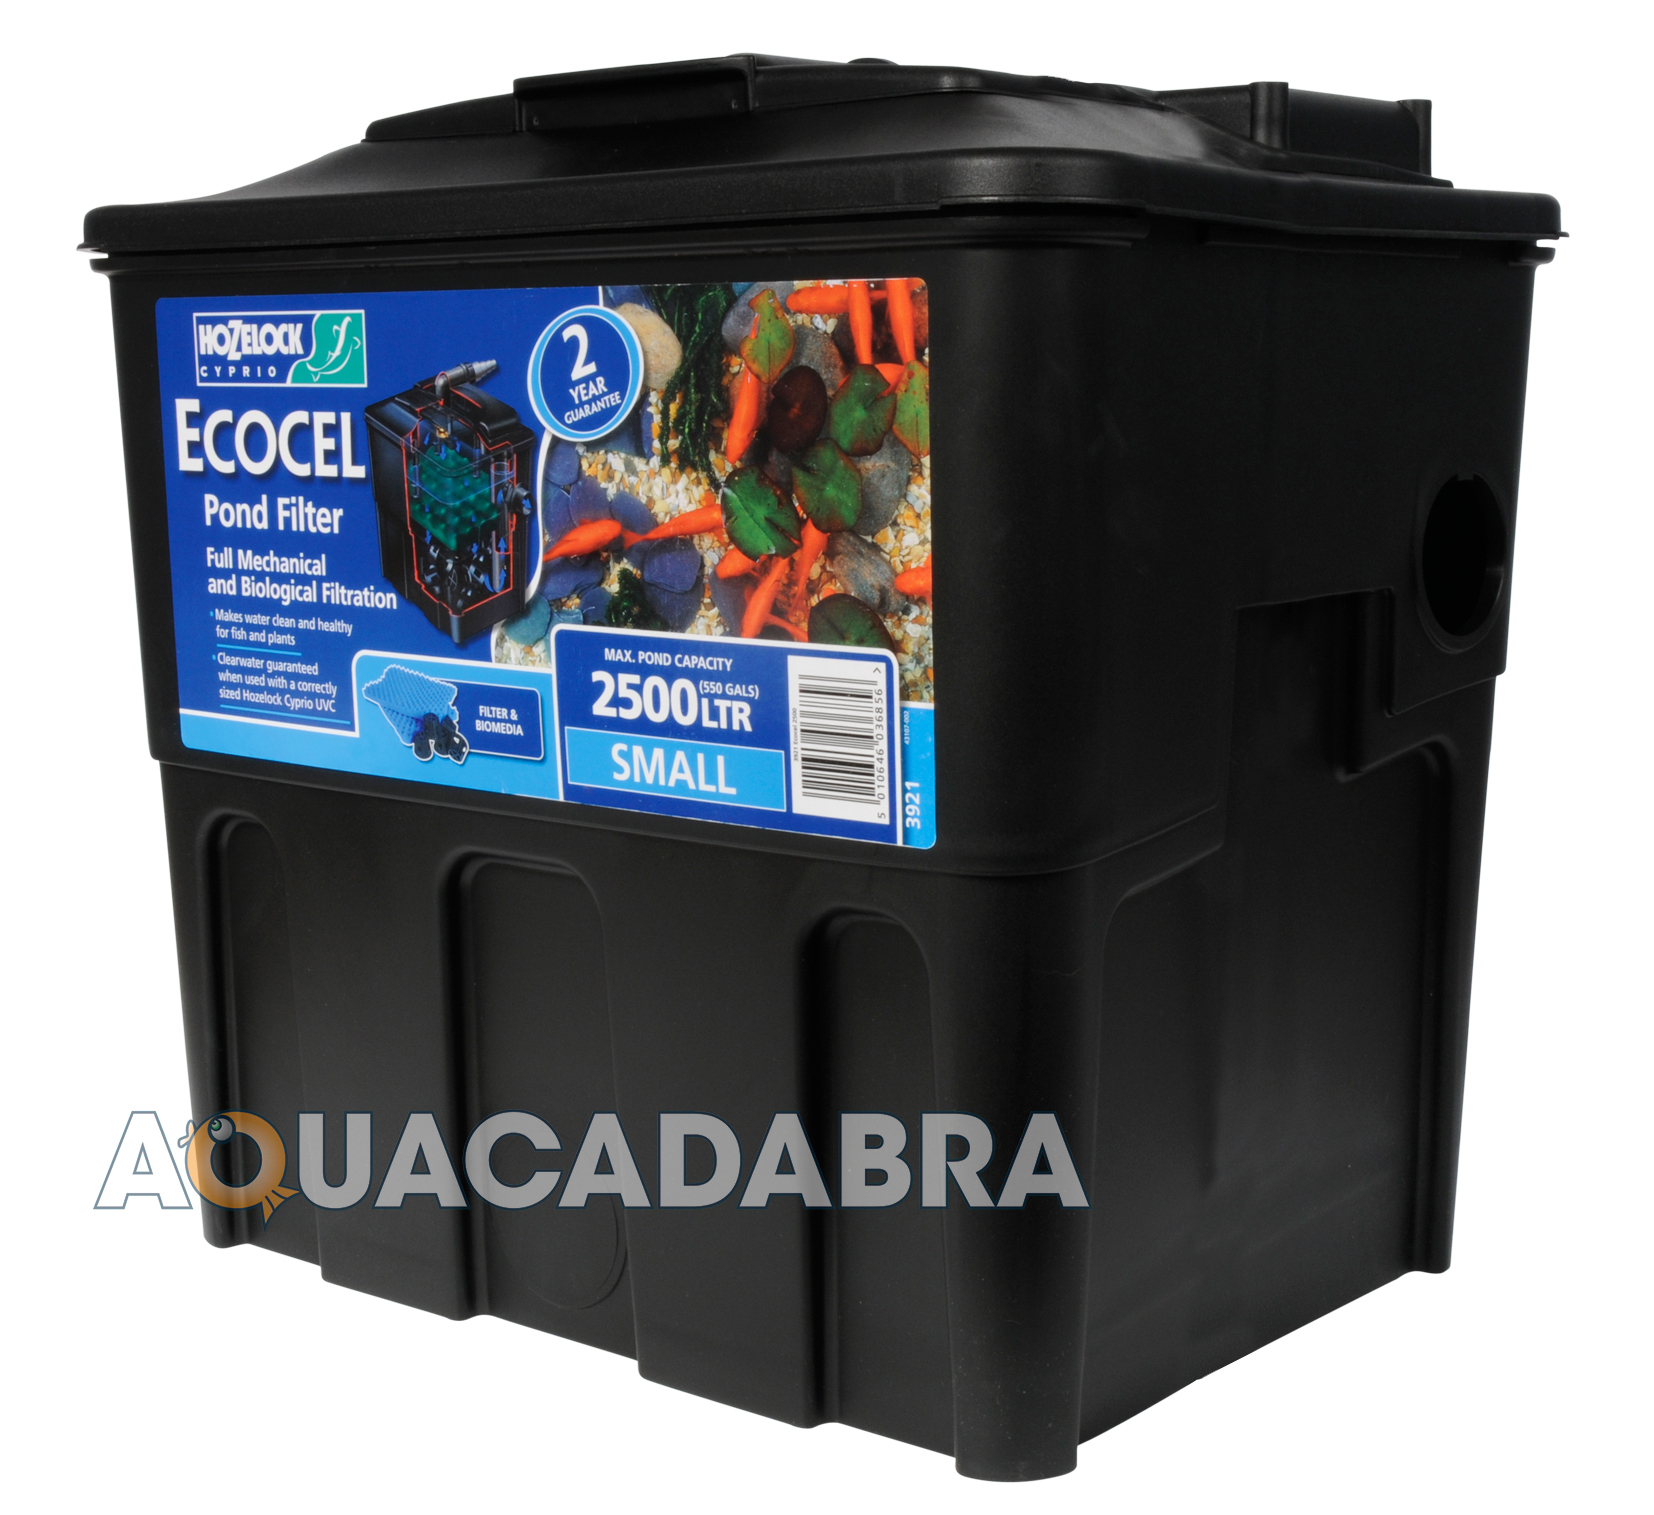 Hozelock Ecocel Pond Filter Fish Gravity Media Box System